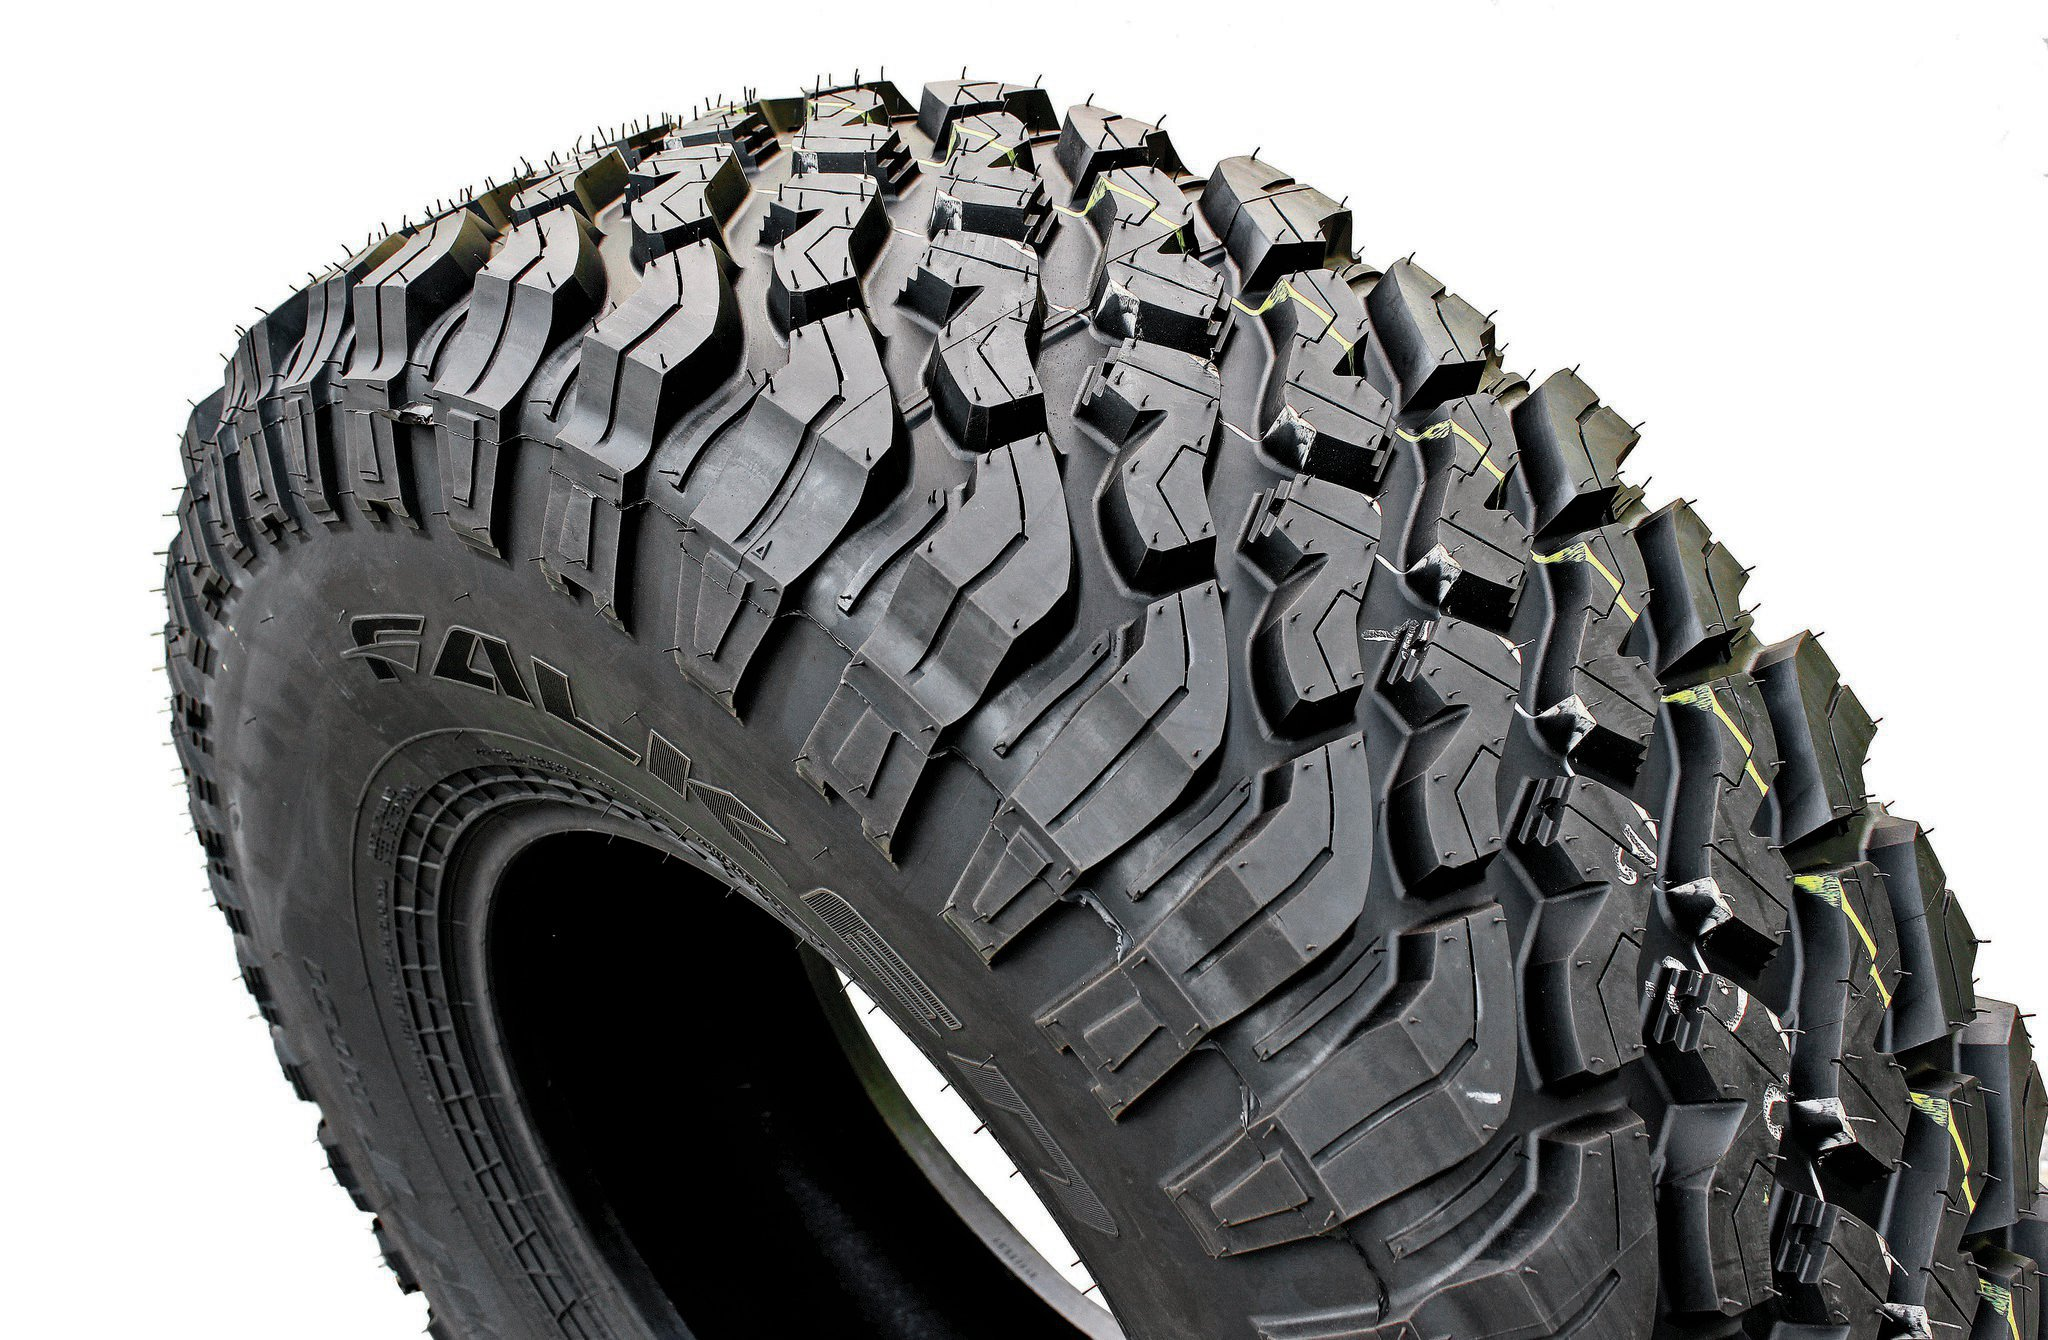 It's tough for us not to get excited when a new mud-terrain tire hits the market, especially when it's on the heels of a successful all-terrain tread from the same company. While the WildPeak M/T's tread layout looks fairly basic by today's standards, sometimes simplicity can be the best approach. In this case, logical tread shapes and substantial sidewall tread proved a recipe for success. Although these are prototypes, standard-production versions are reported to look extremely similar.